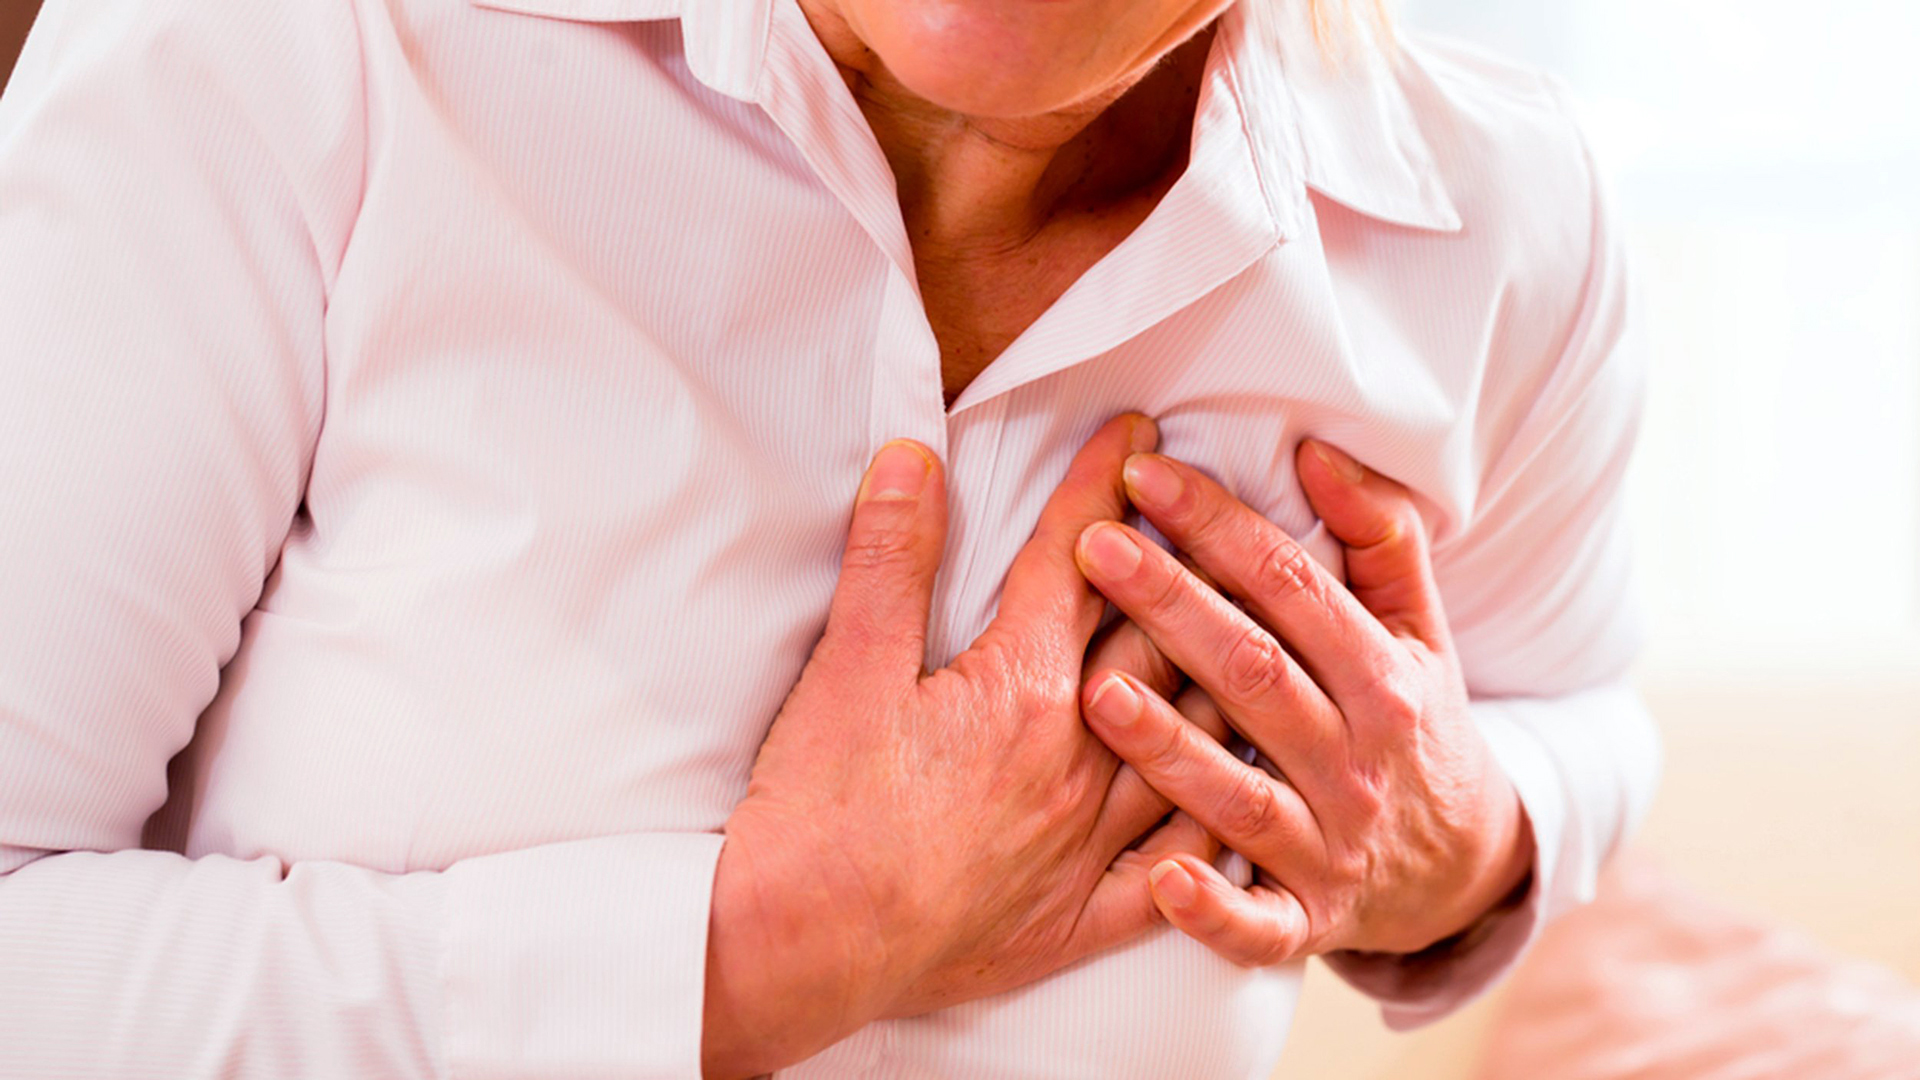 5 Heart attack symptoms in women that are super common (and scary)